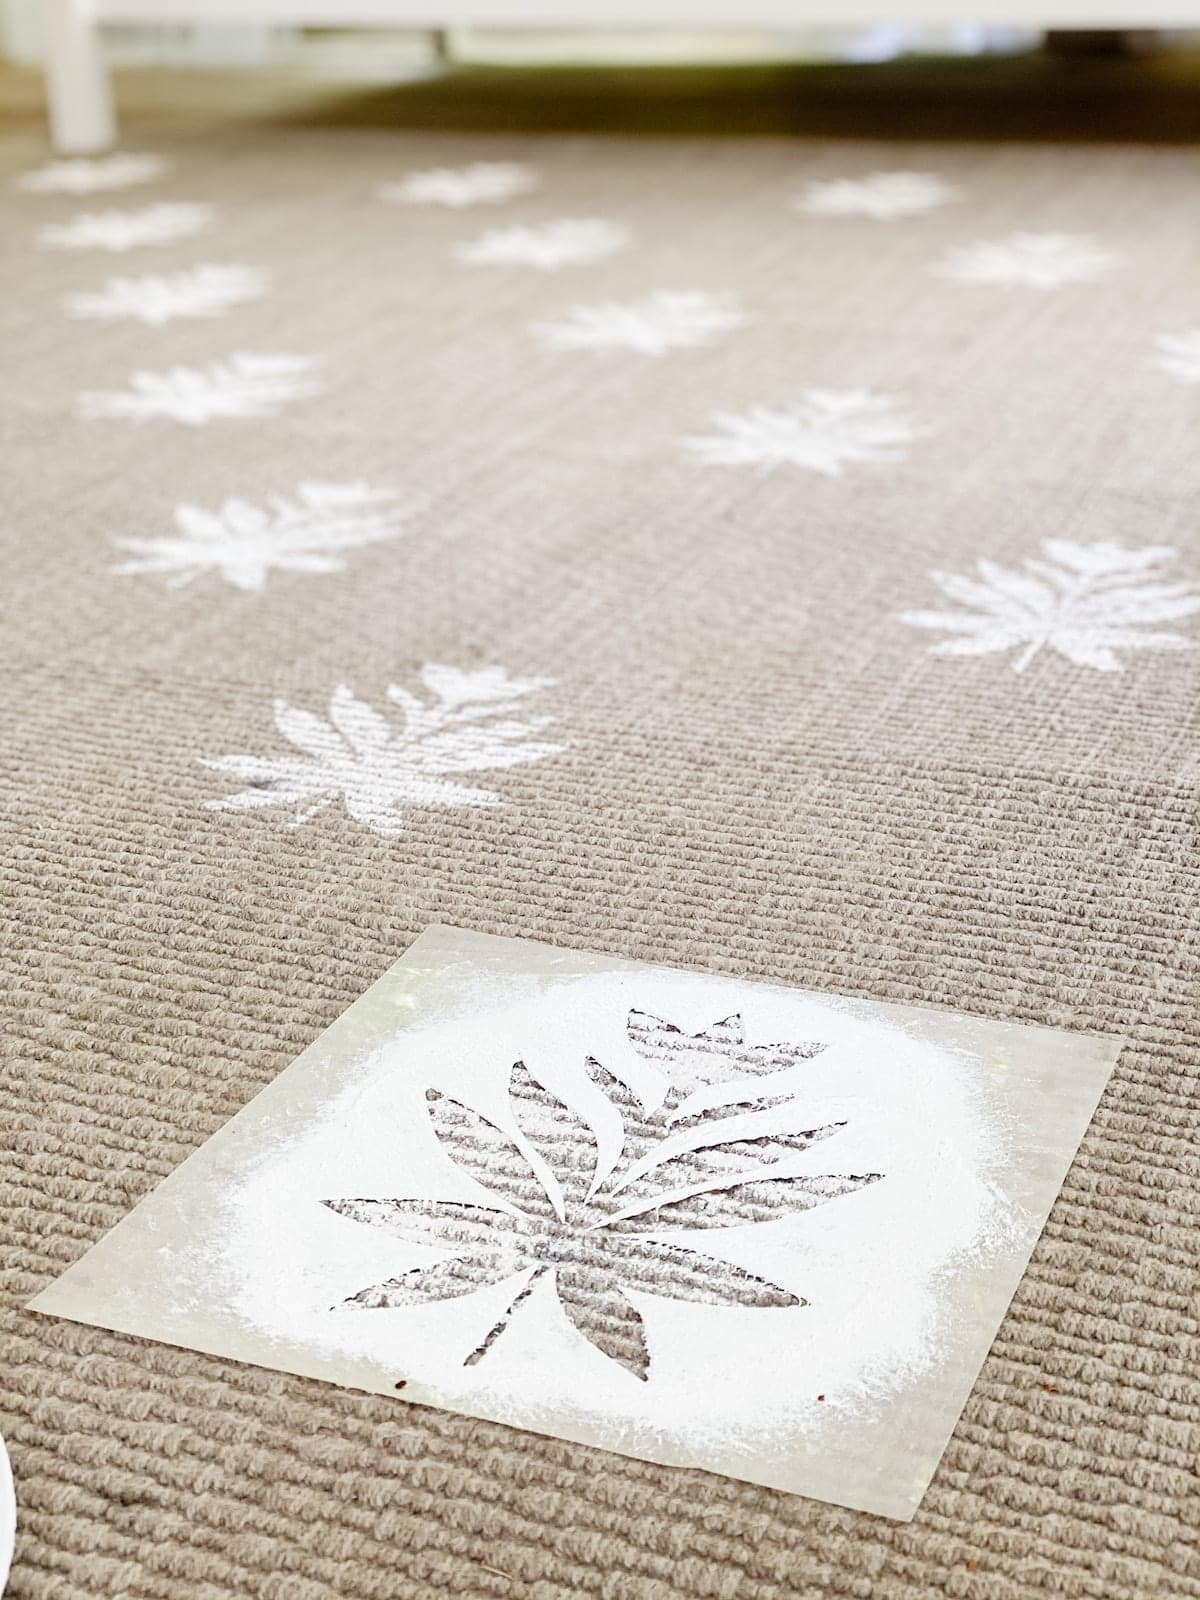 DIY outdoor rug with floral block pattern using a homemade stencil from a Cricut machine